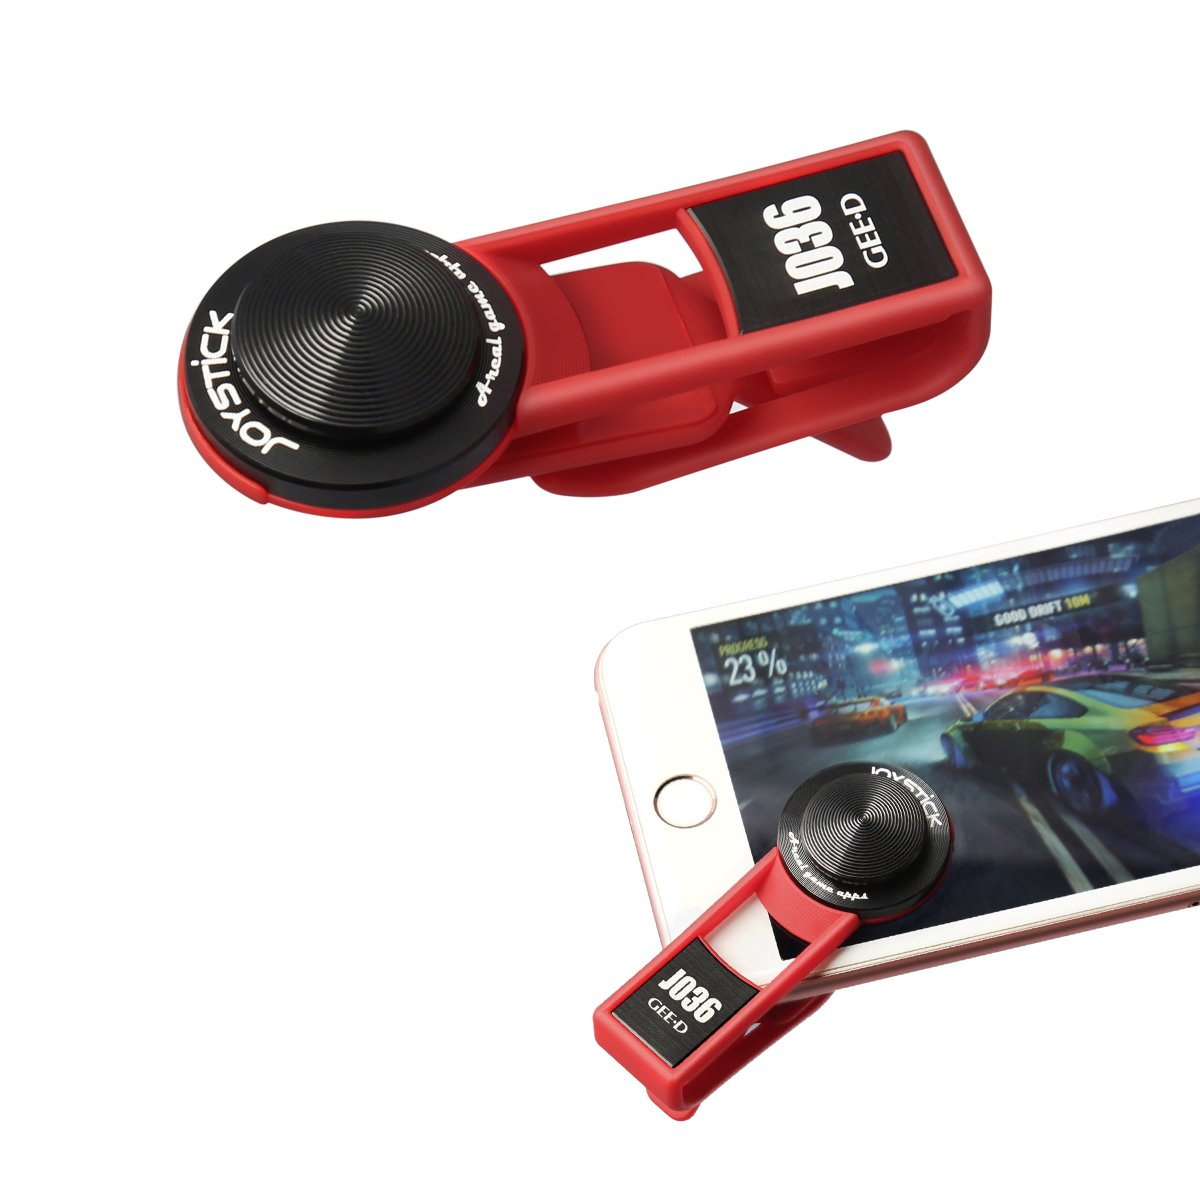 GEED J036 Game Controller PUBG Mobile Phone Joystick Anti-slipping Touch Screen Gamepad for iPhone, iPad, Android phones, Tablet PC,(RED)